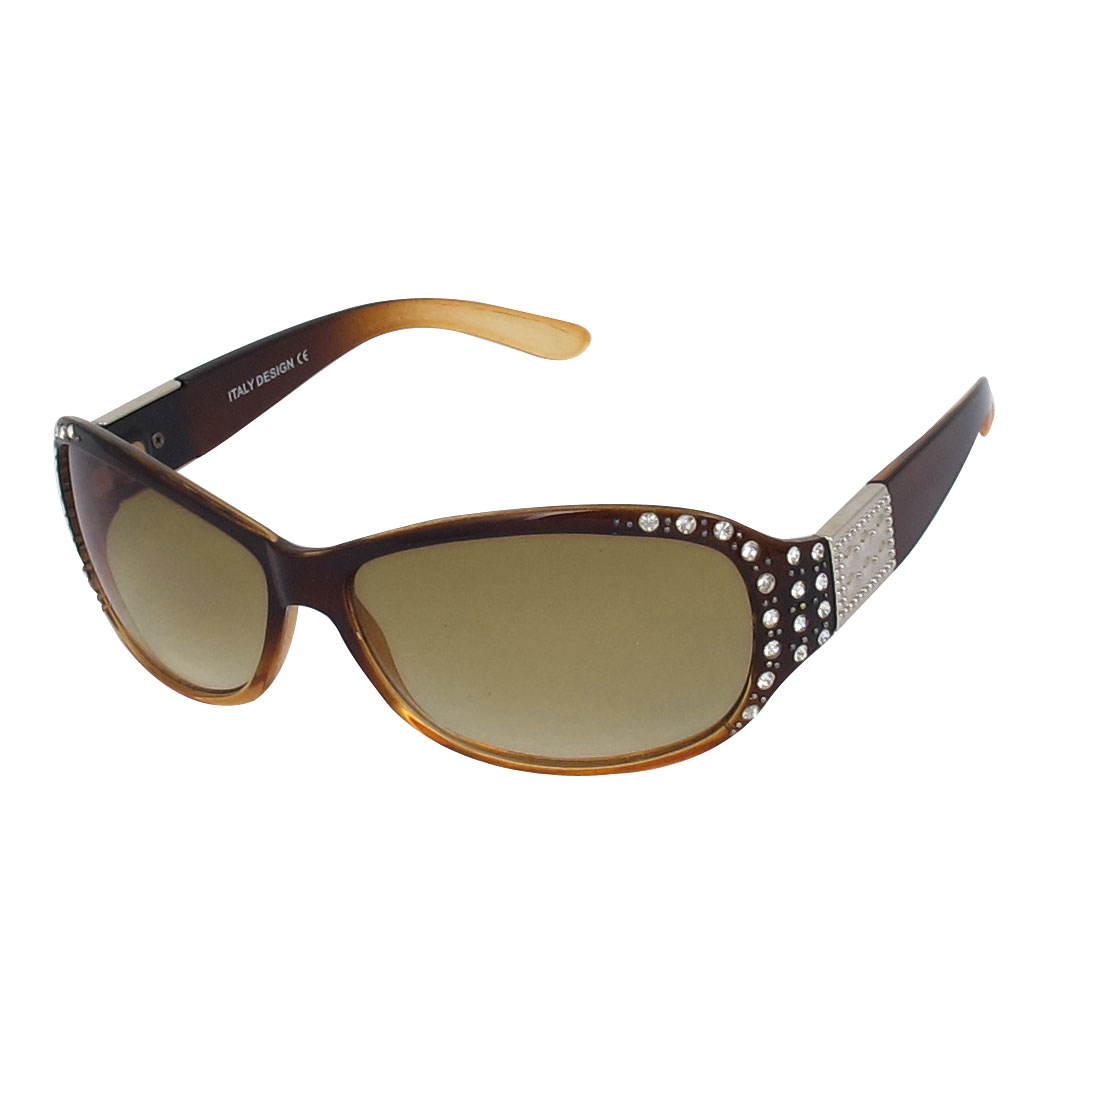 Lady Full Rim Faux Rhinestone Decor Single Bridge Eyewear Sunglasses Brown